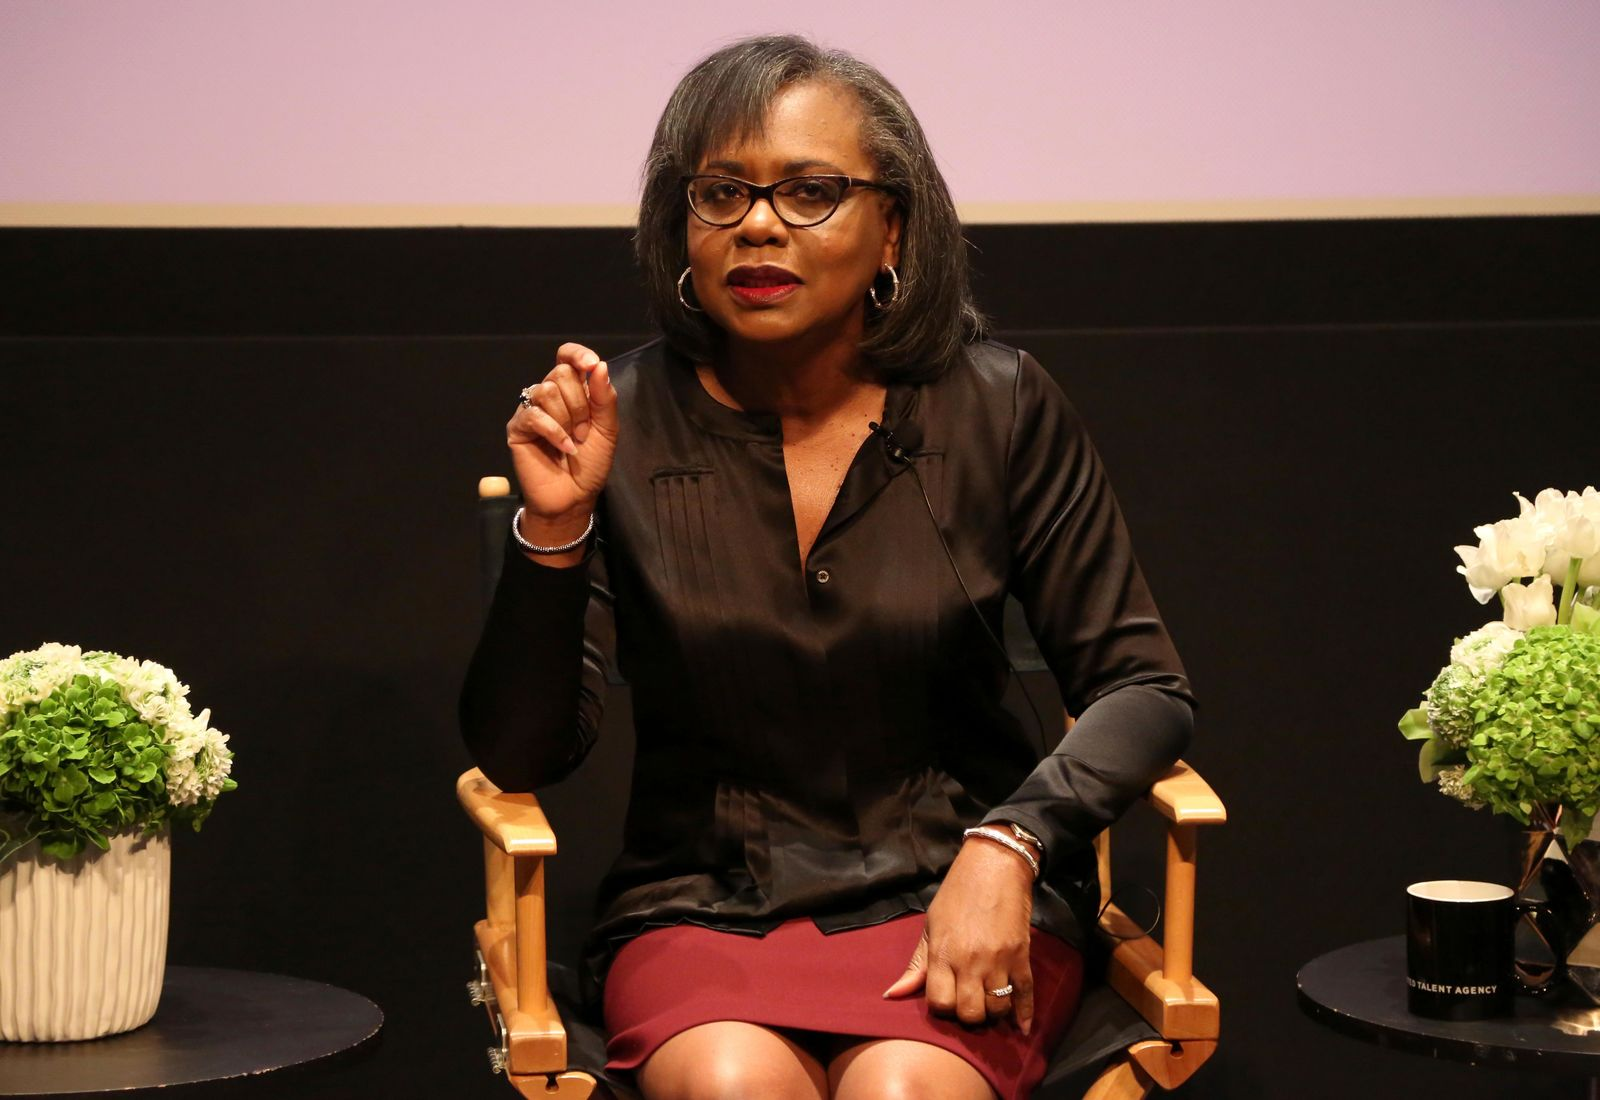 FILE - In this Dec. 8, 2017 file photo, Anita Hill speaks at a discussion about sexual harassment and how to create lasting change from the scandal roiling Hollywood at United Talent Agency in Beverly Hills, Calif. (Photo by Willy Sanjuan/Invision/AP, File)